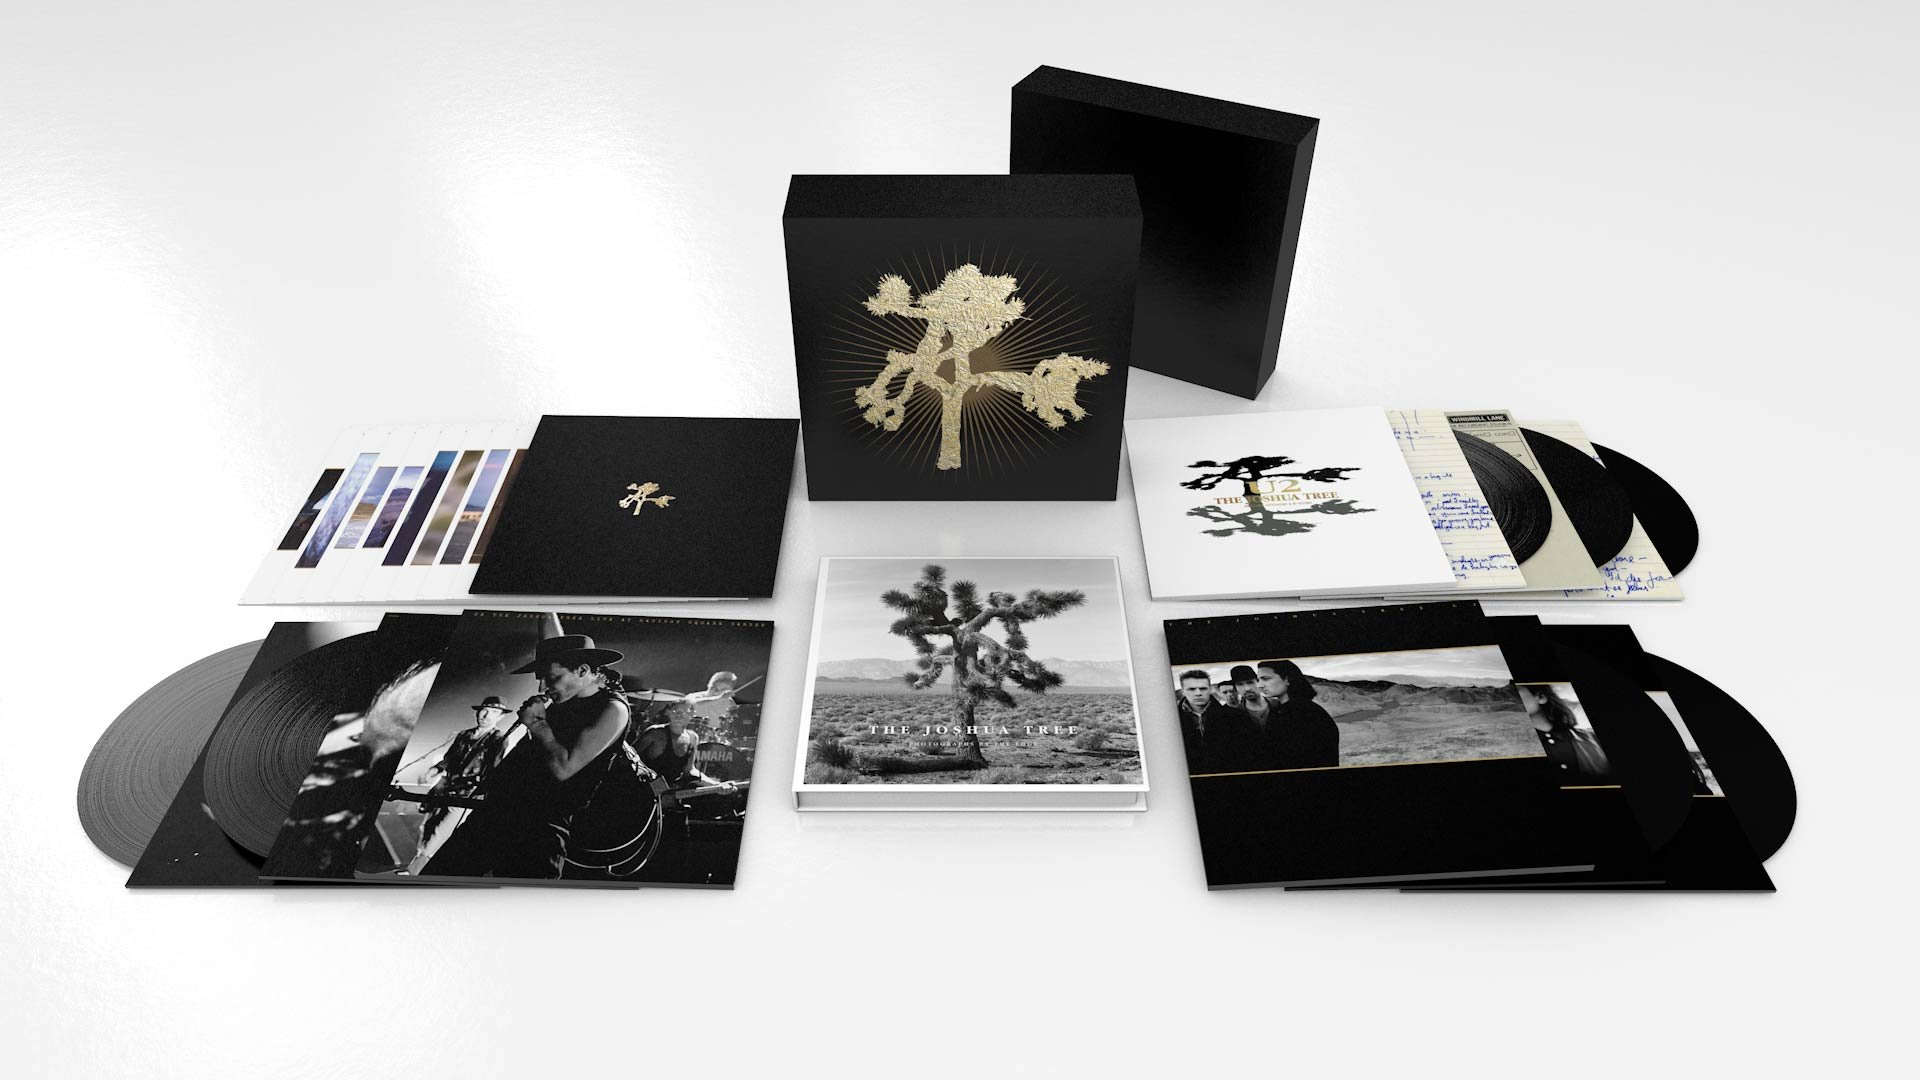 The Joshua Tree [7 LP][Super Deluxe Edition] by Island